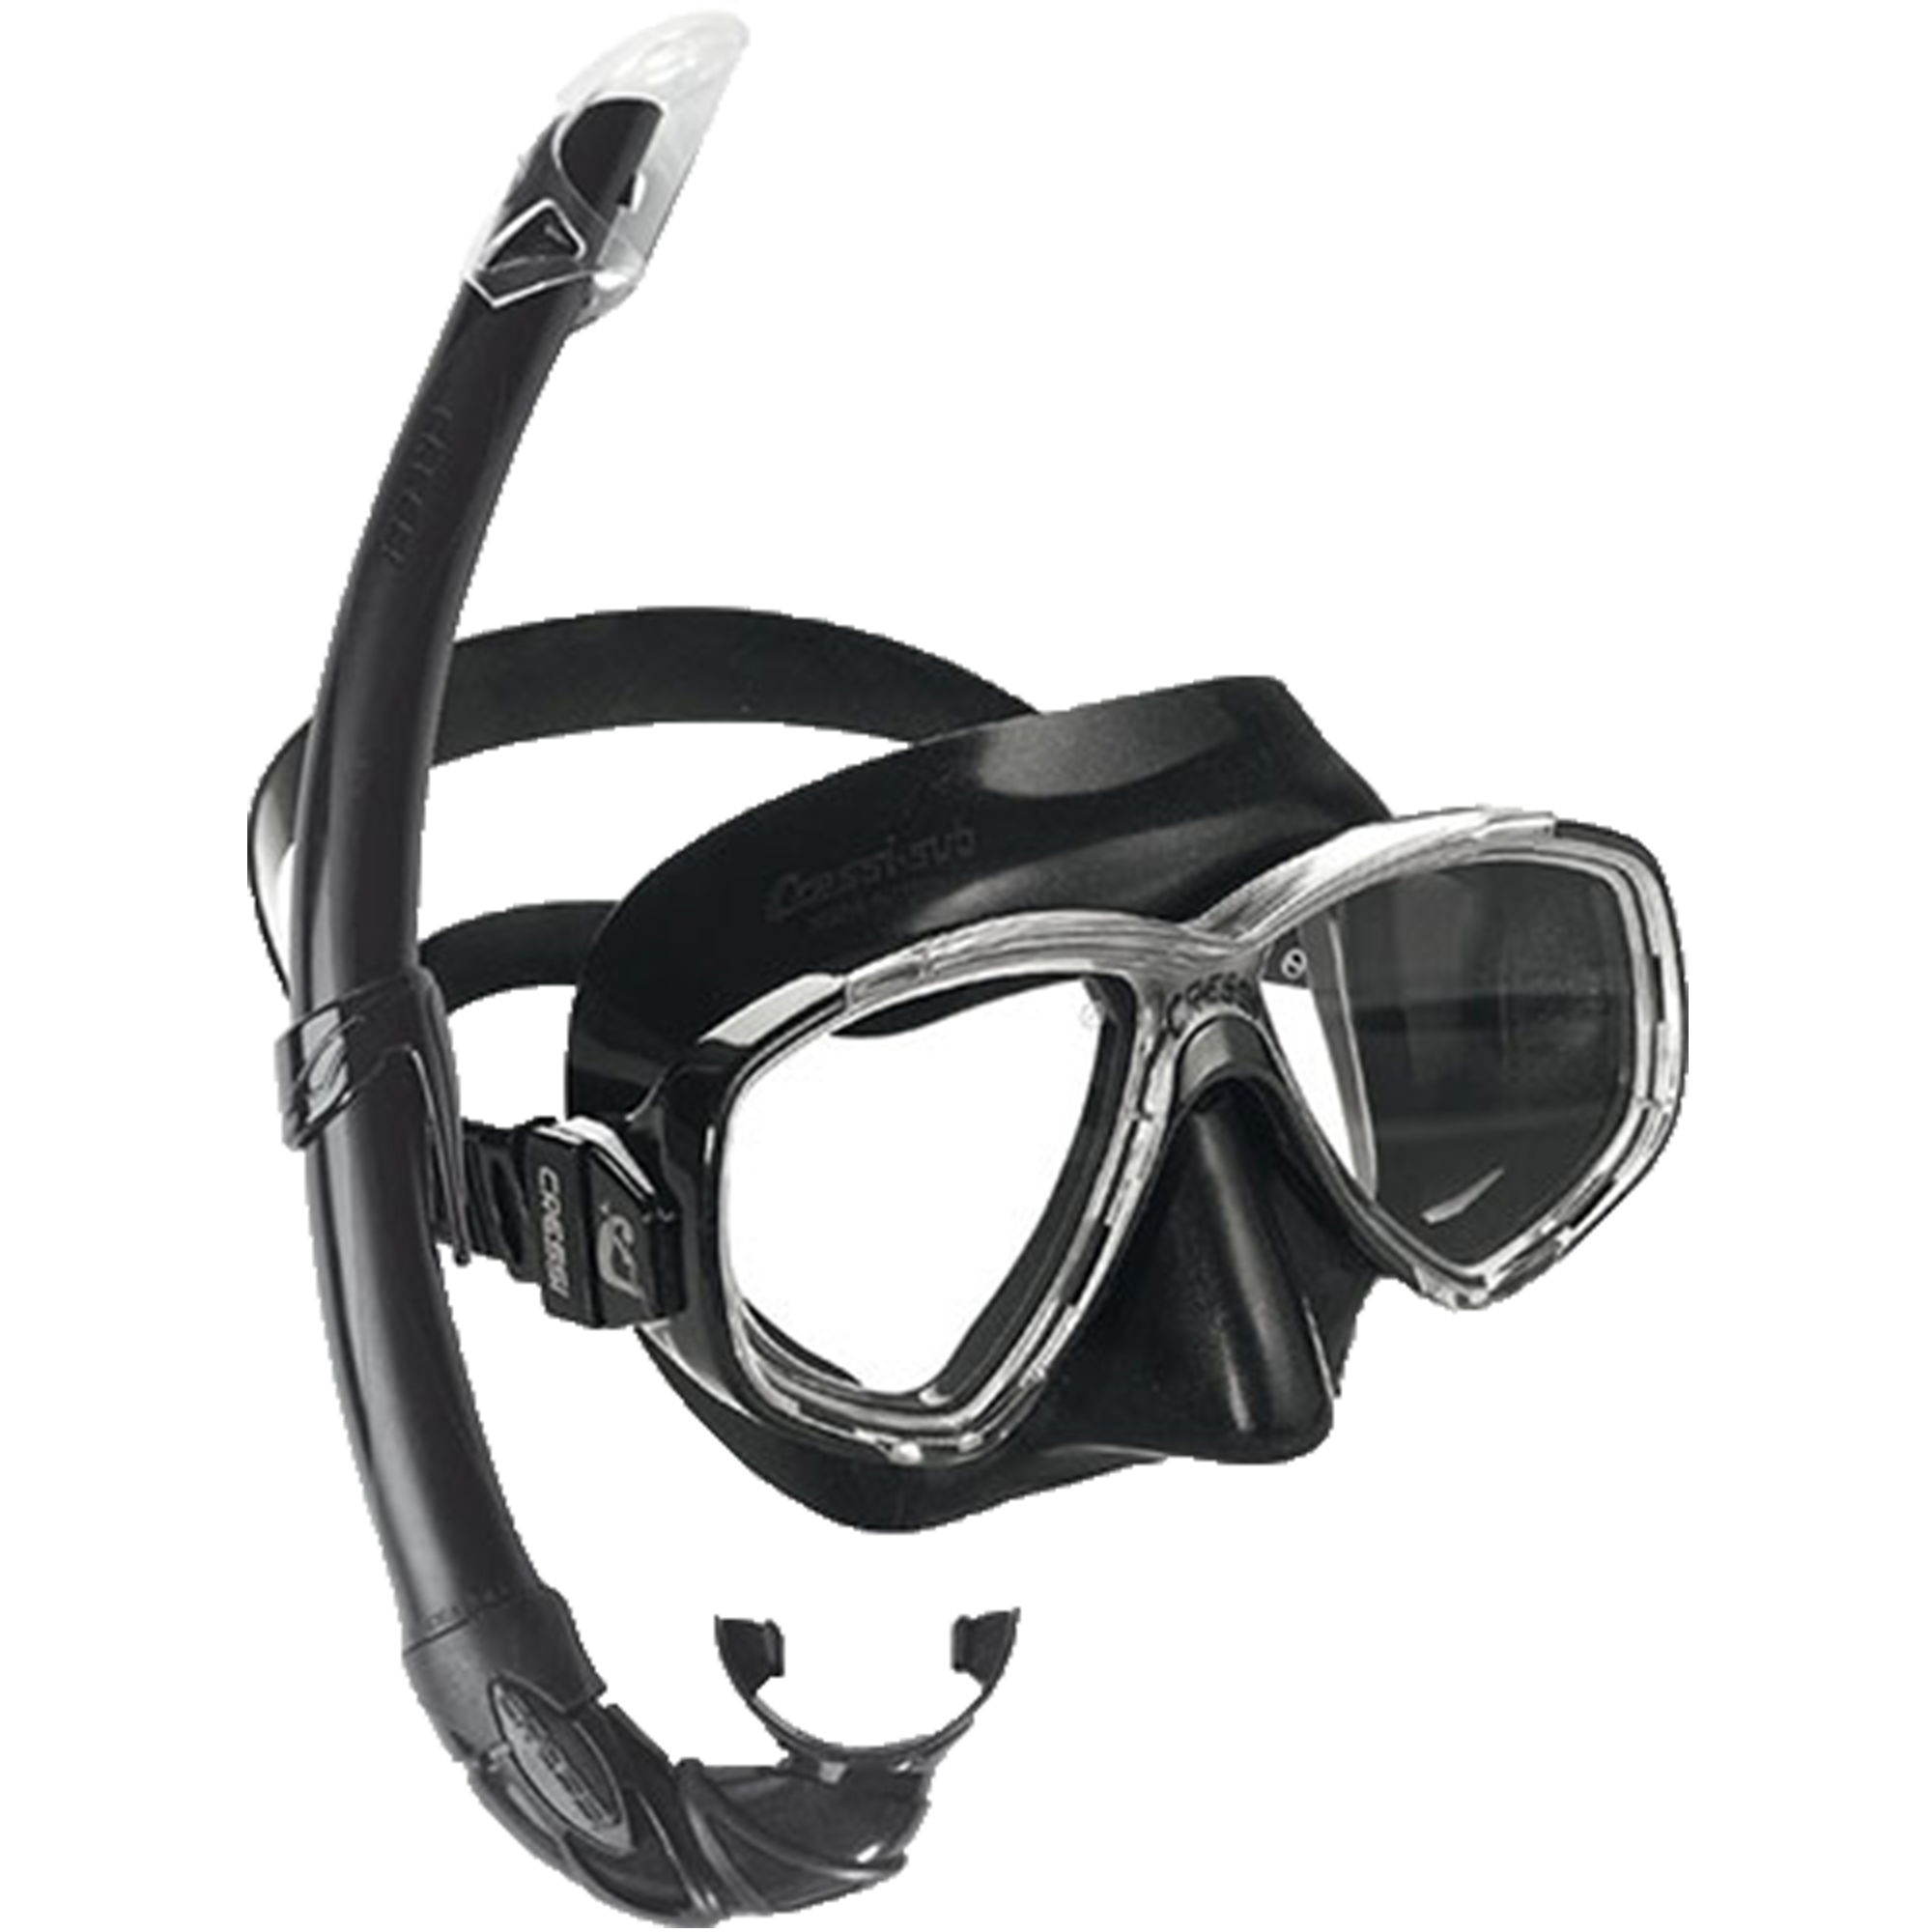 Transparent gear snorkeling. Cressi perla mask and